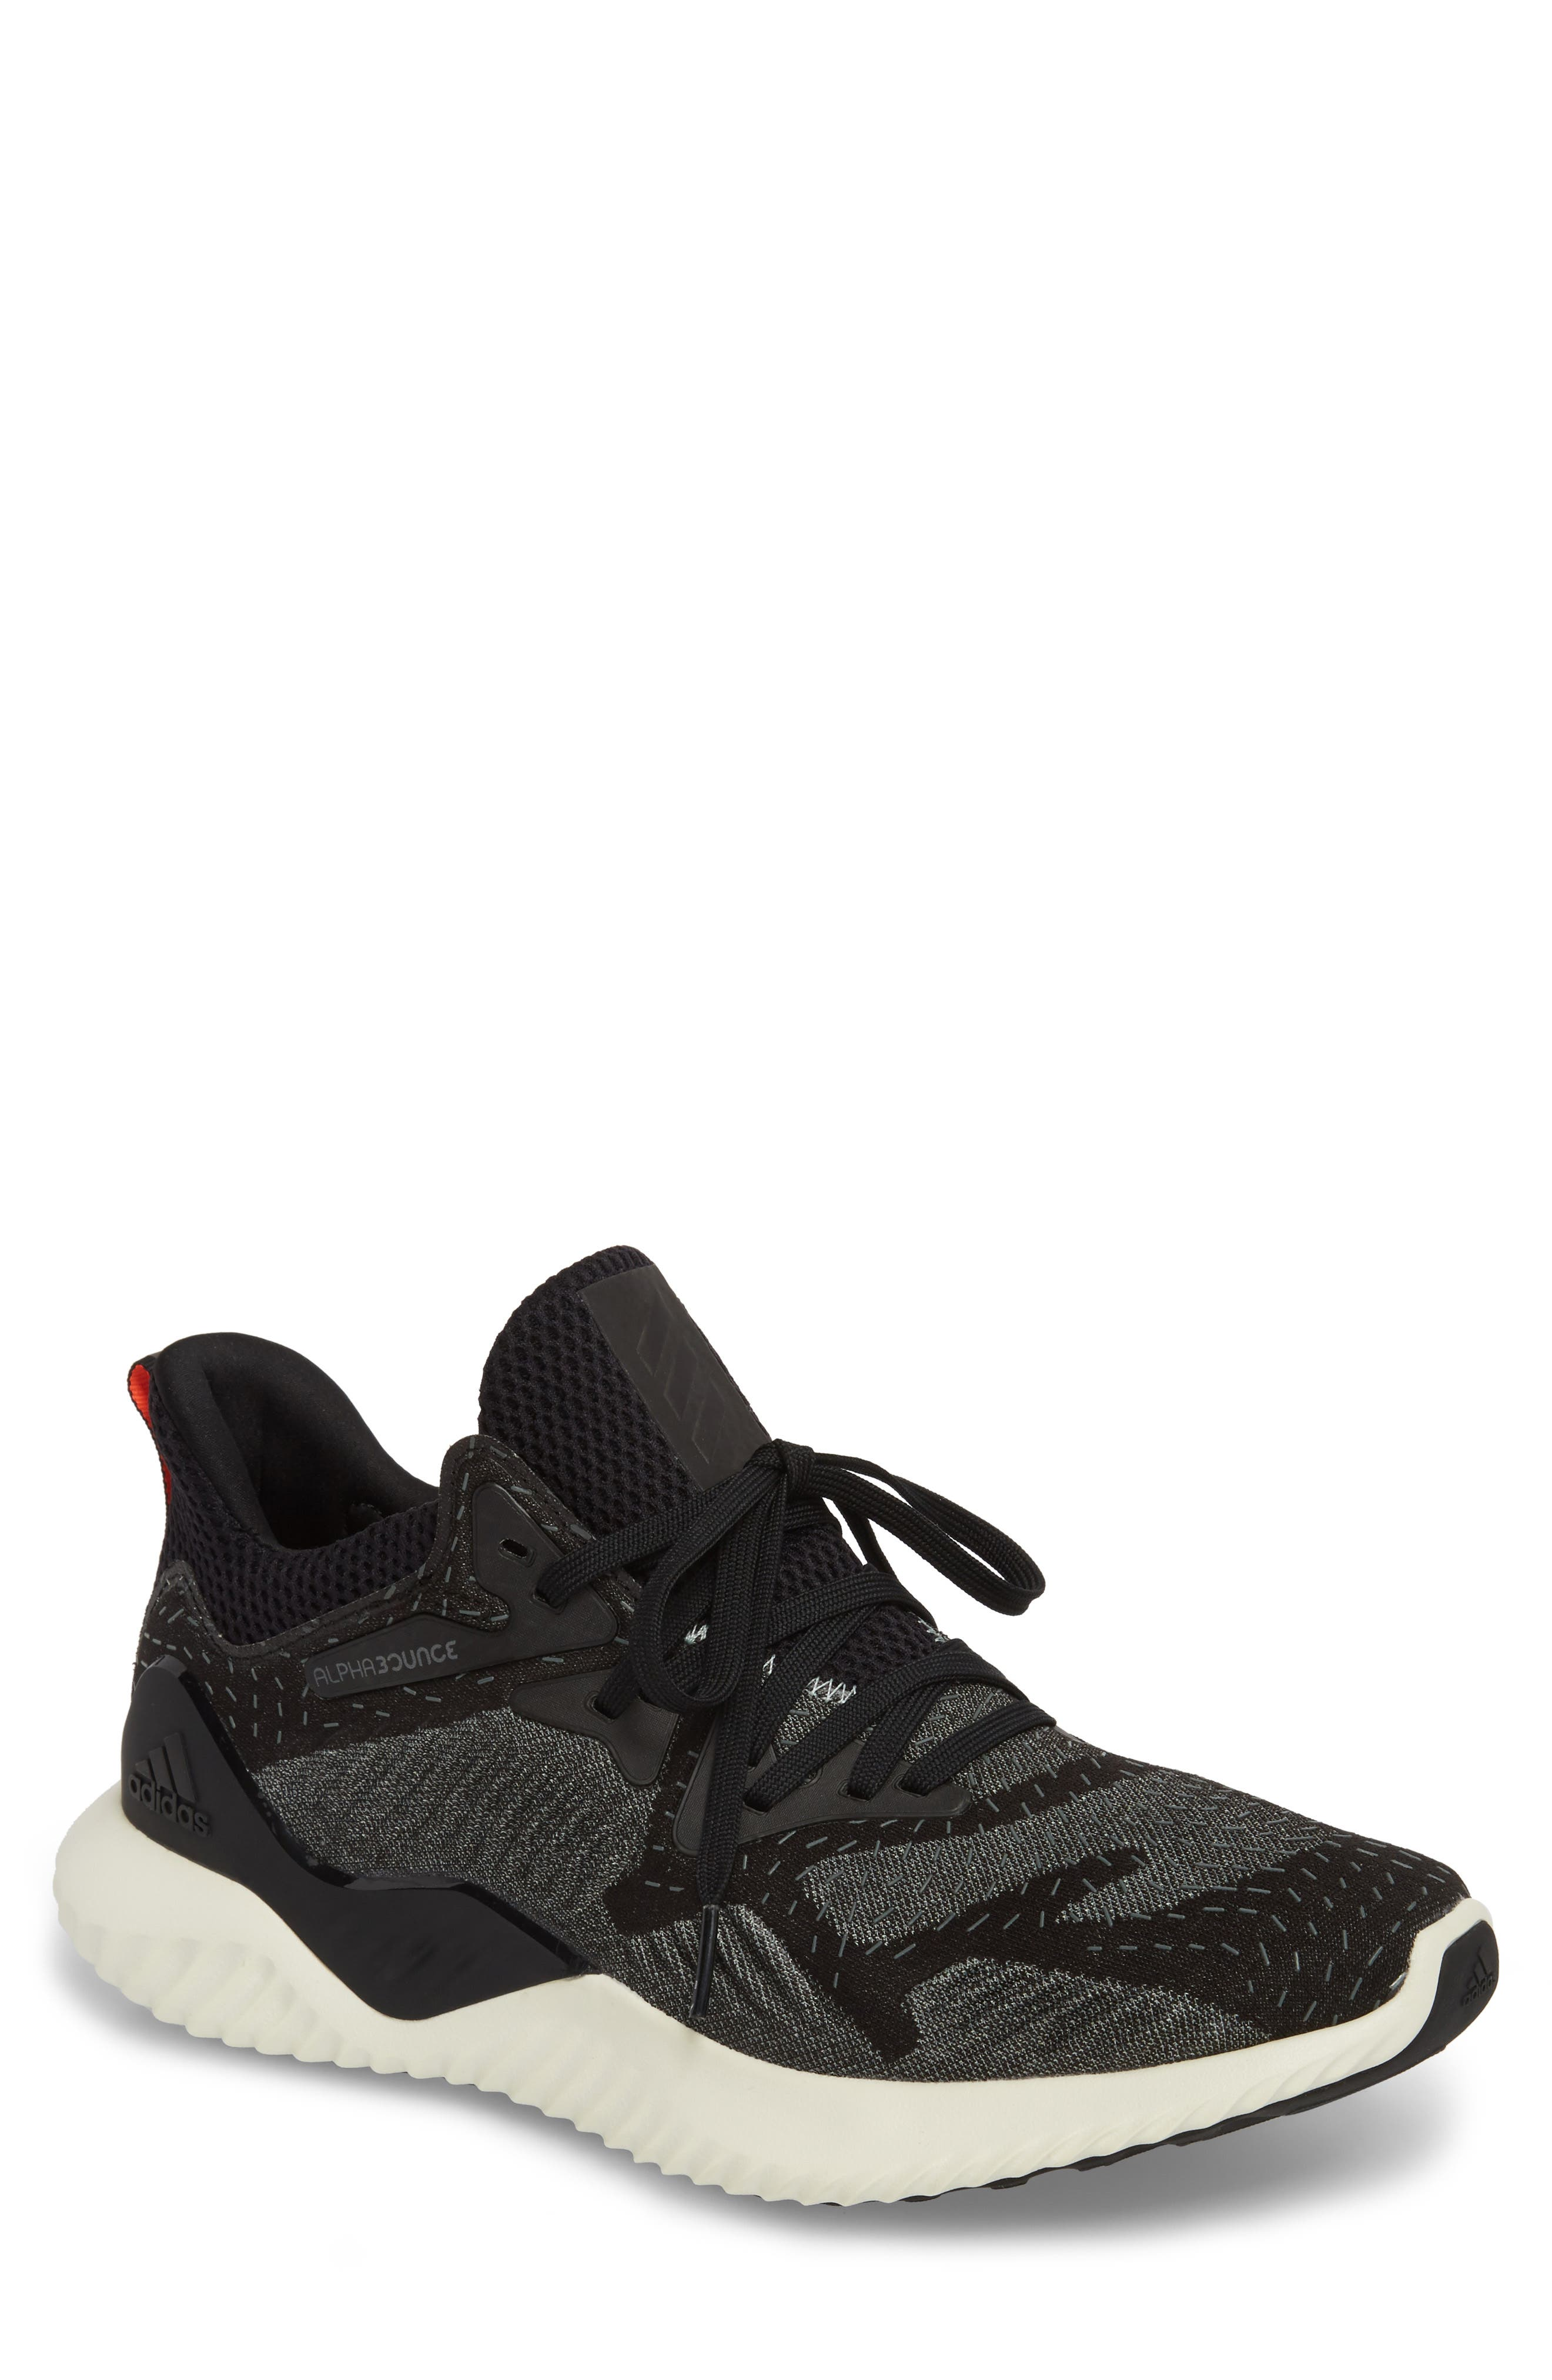 ADIDAS AlphaBounce Beyond Knit Running Shoe, Main, color, 001